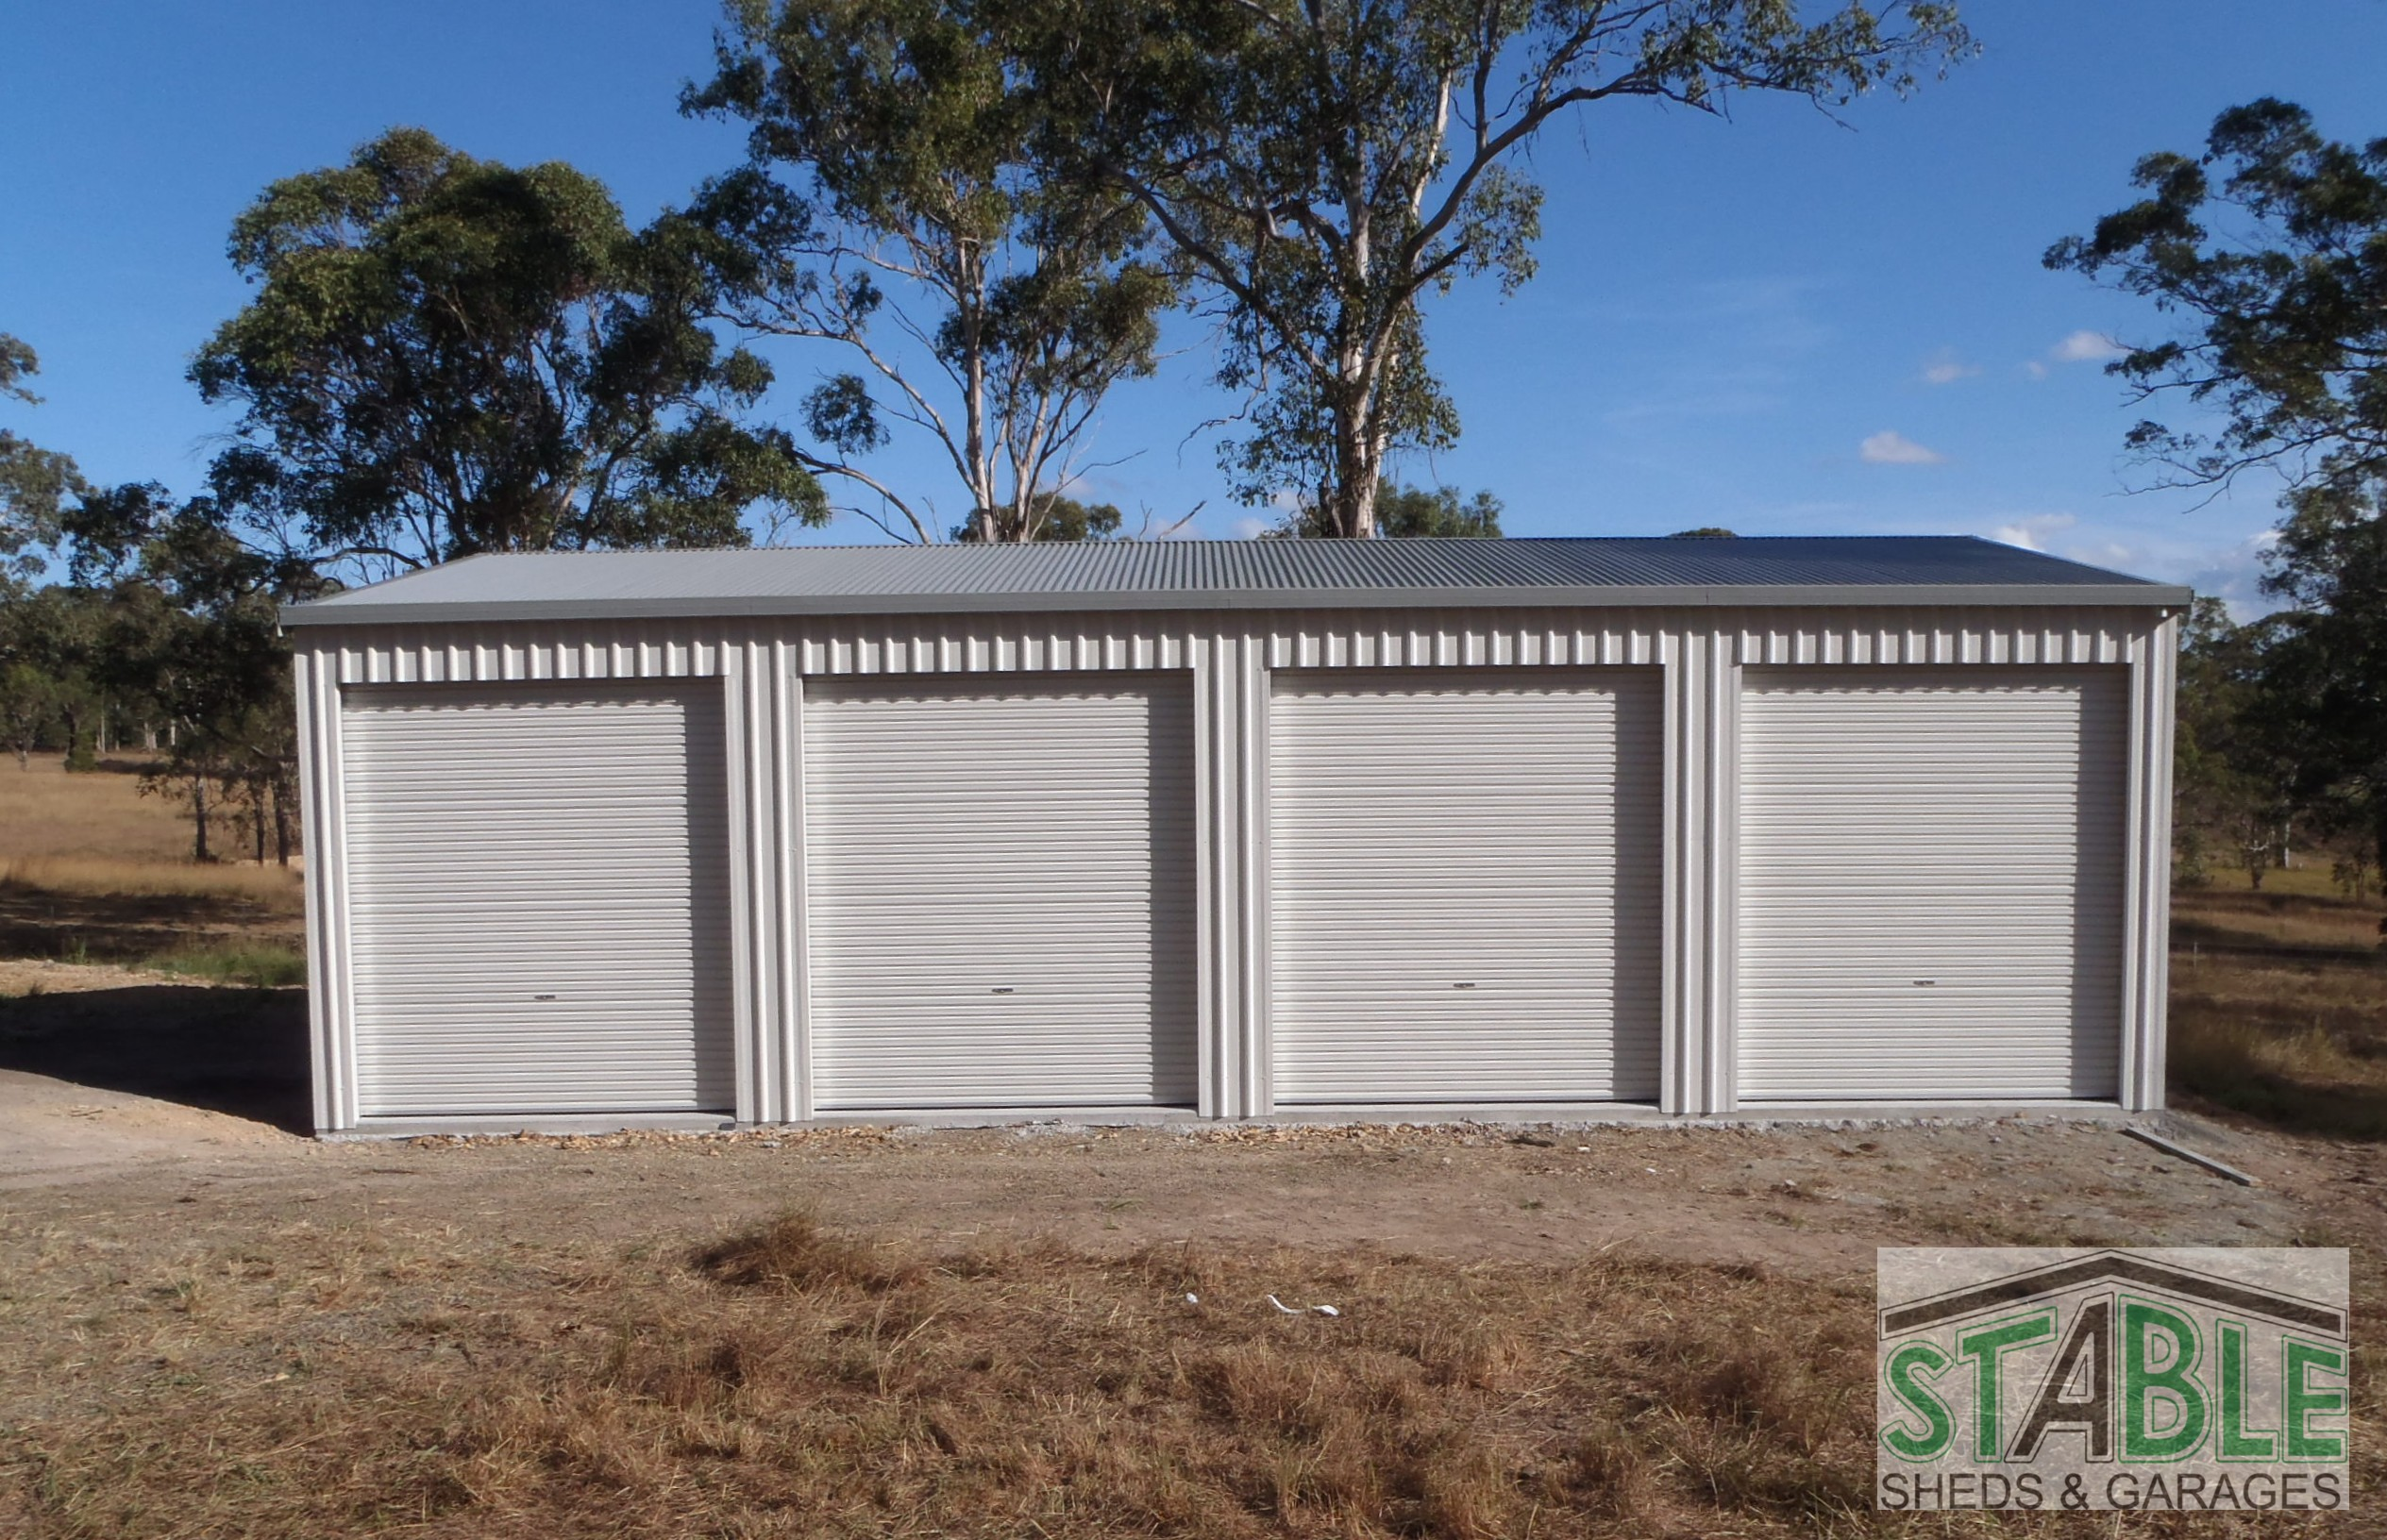 Photos Stable Sheds